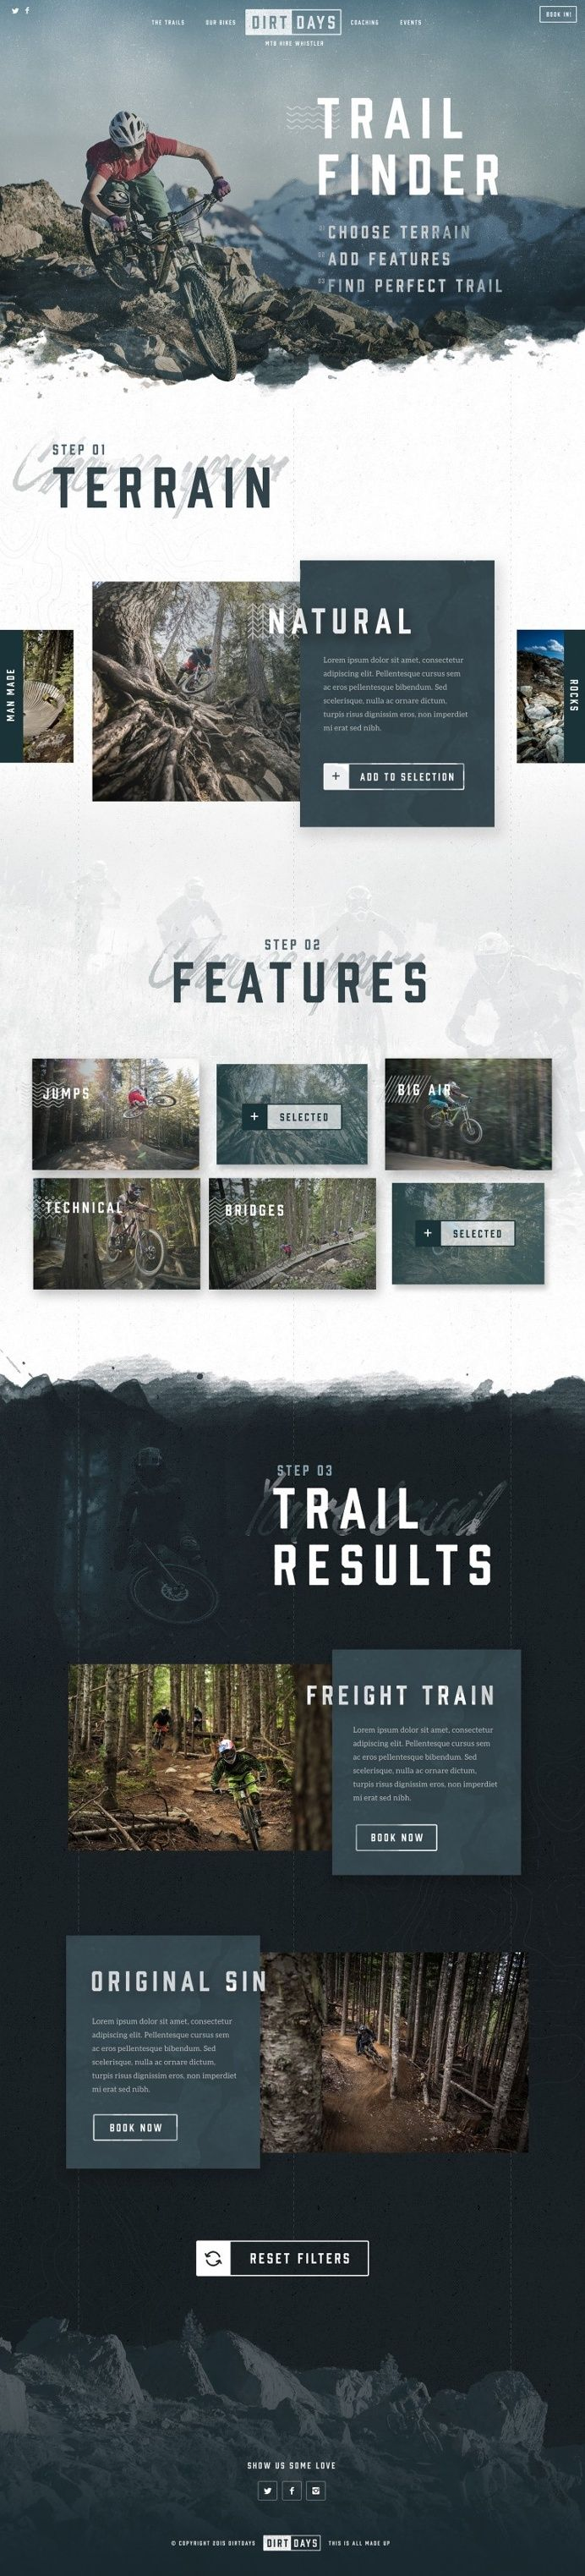 Dirtdays Trail Finder Concept in Web design